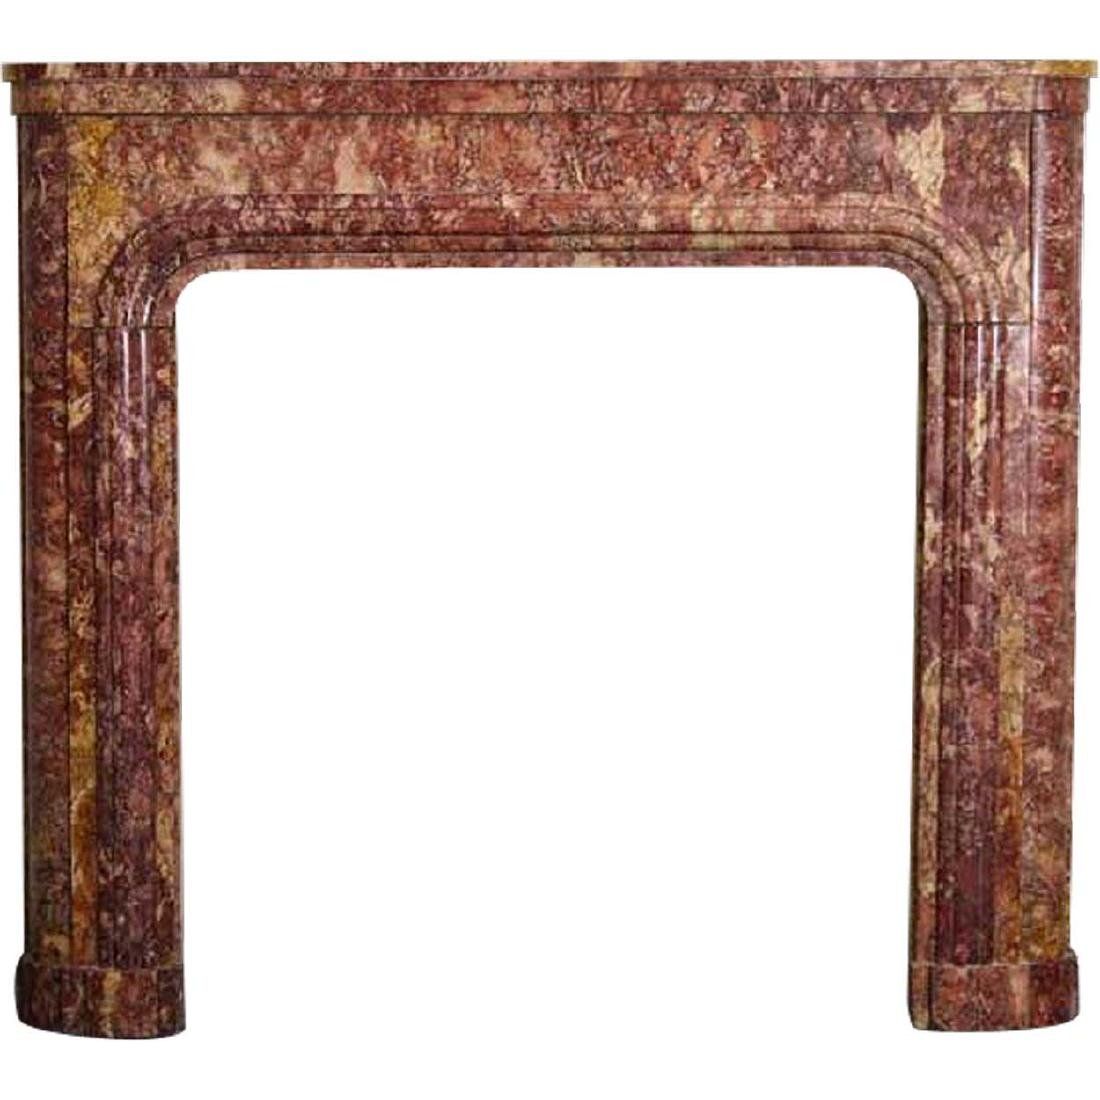 French Art Deco Spanish Brocatelle Marble Fireplace